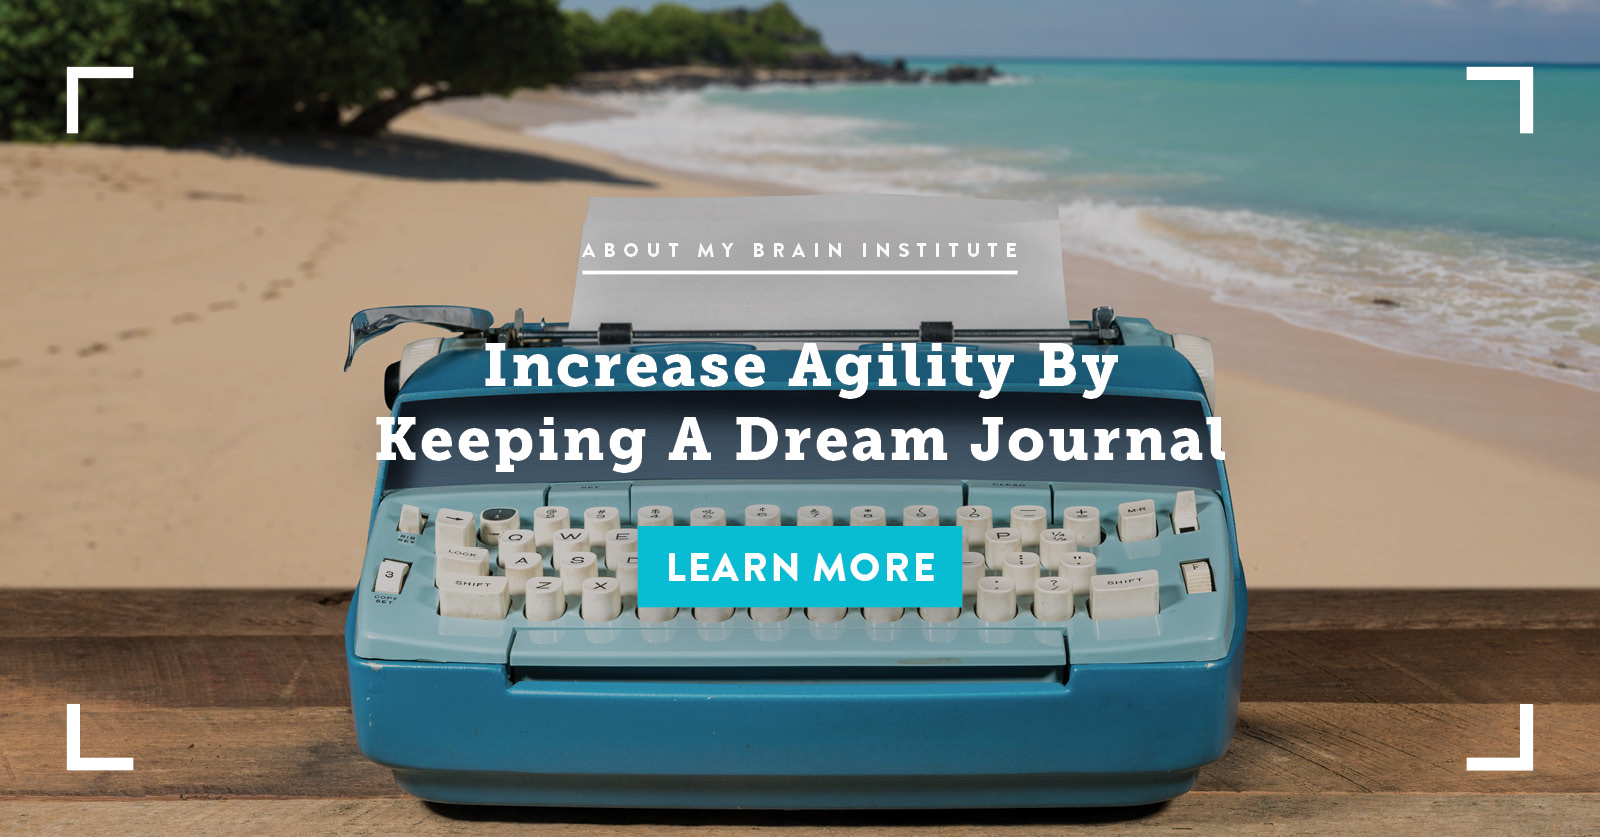 Increase Agility by Keeping a Dream Journal